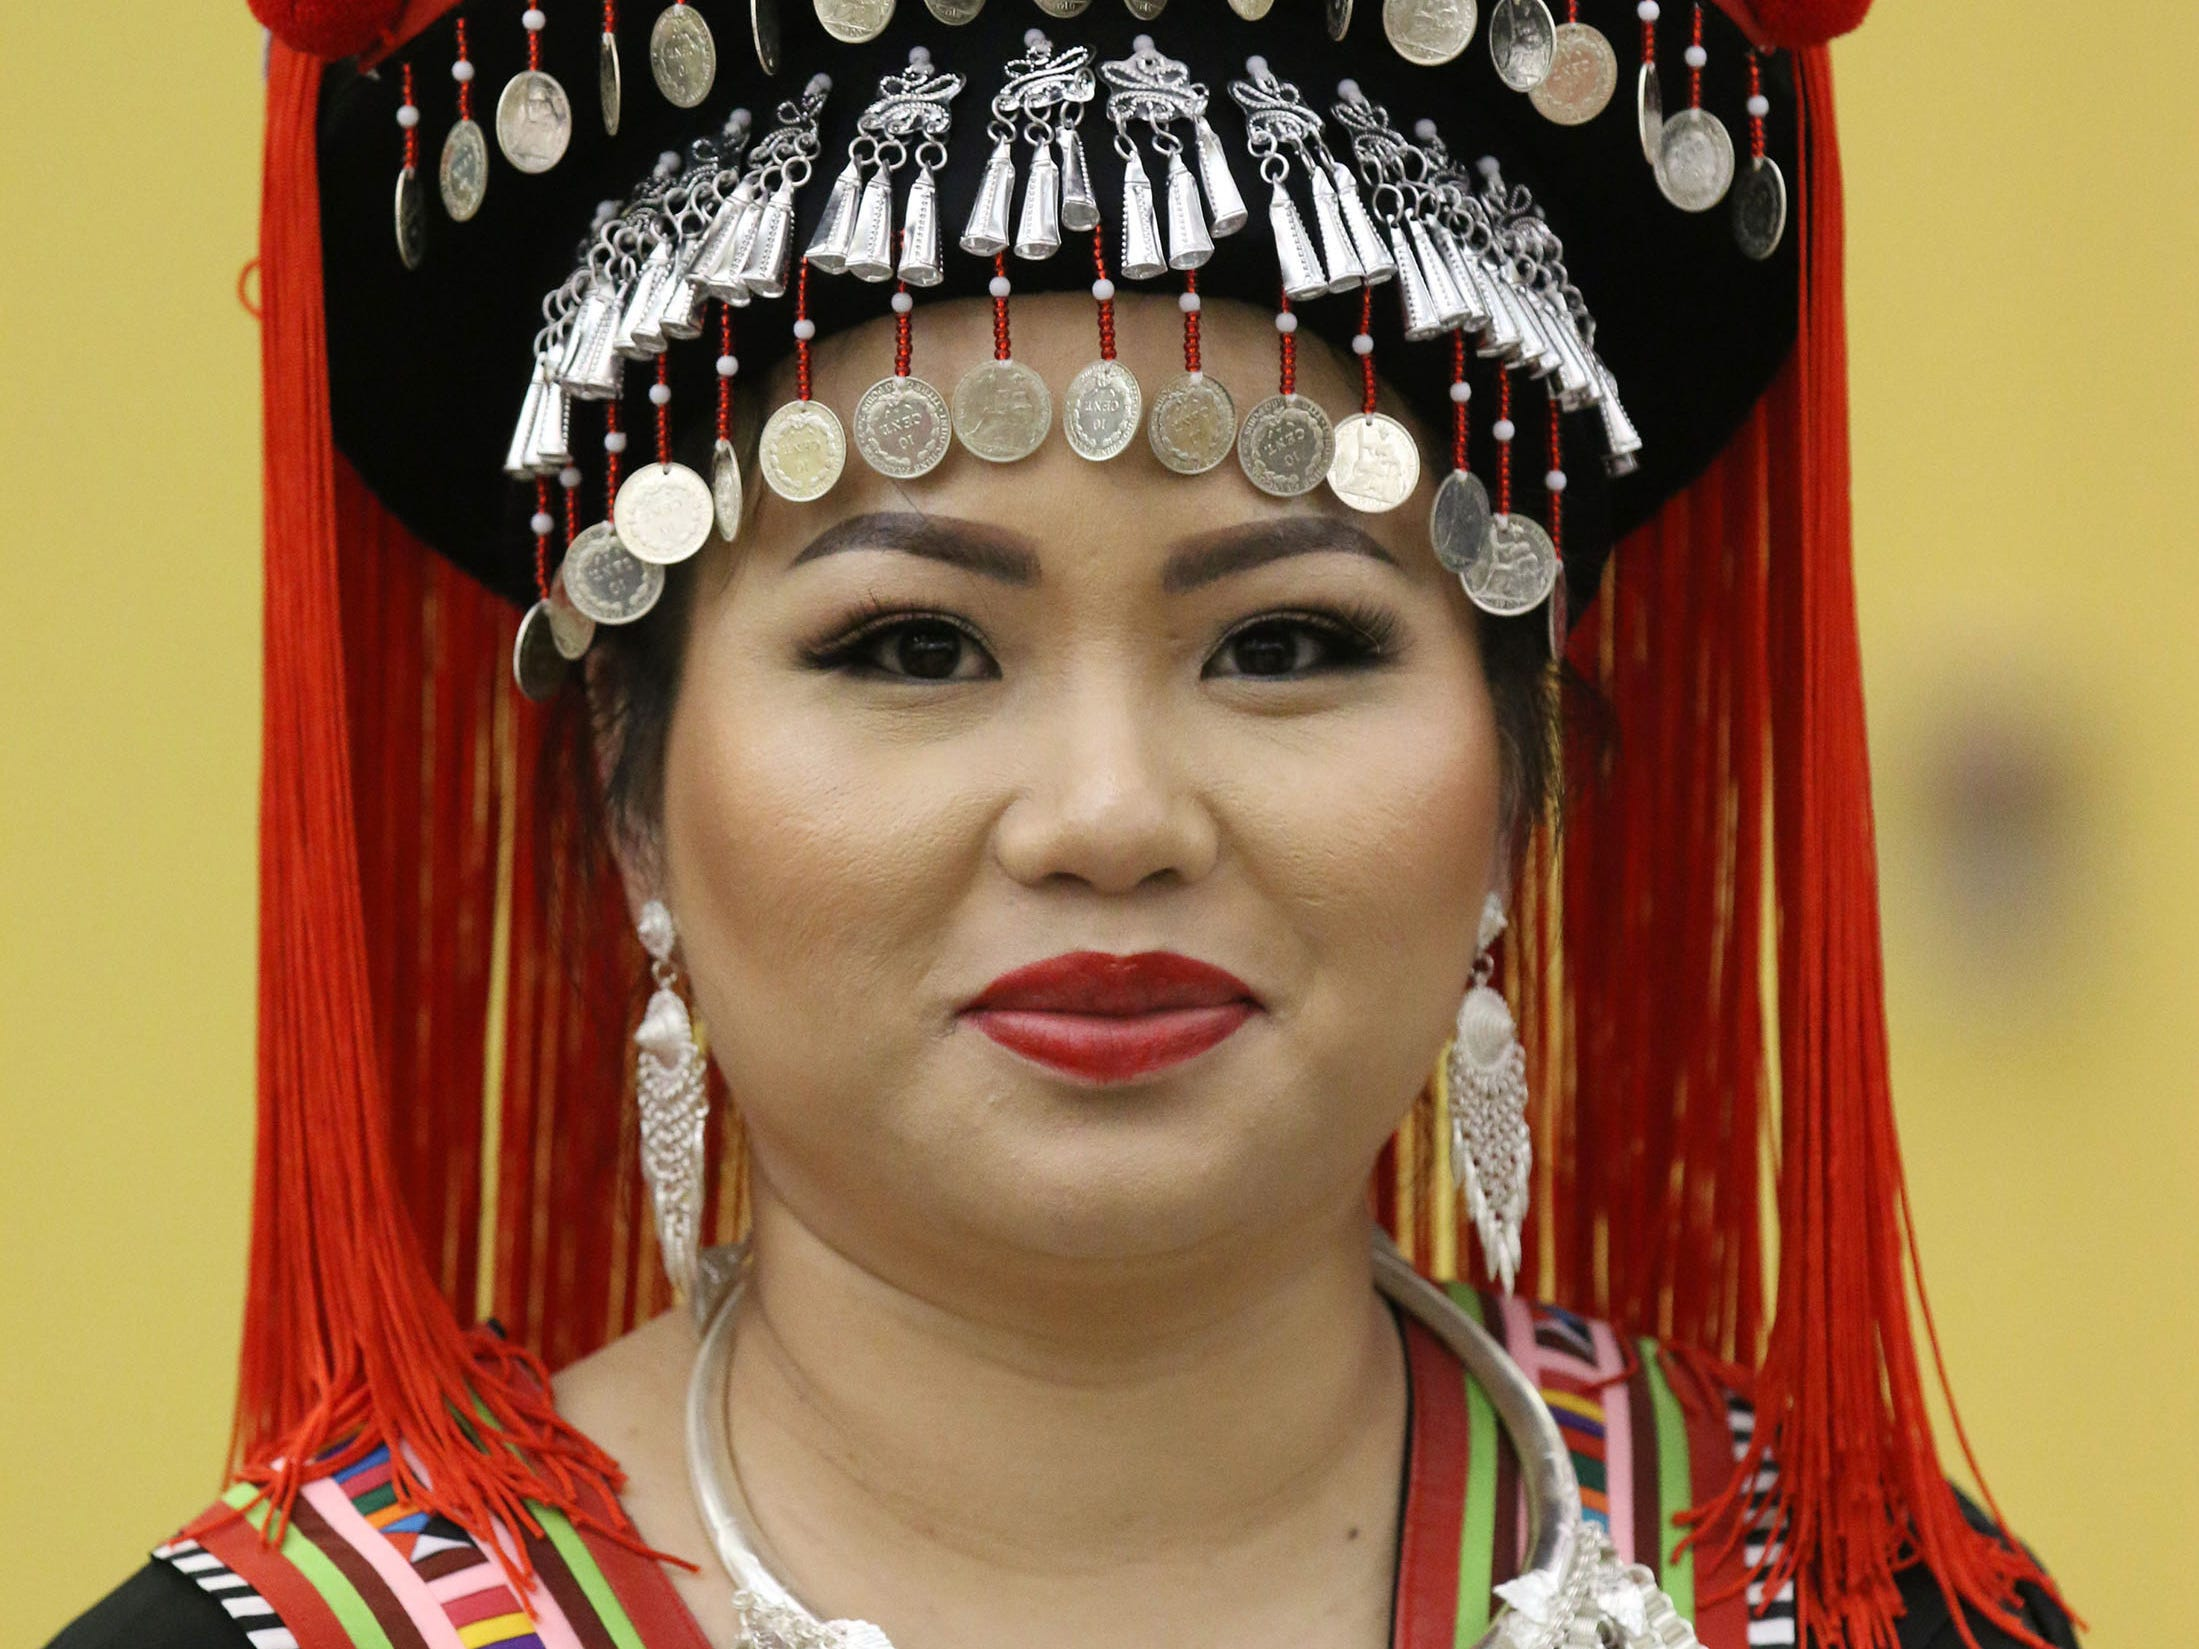 Tina Chang of Sheboygan, poses with her traditional Hmong costume, Friday, November 23, 2018, in Sheboygan, Wis. She was at the Hmong New Year celebration which is being held at Sheboygan North High School this weekend.